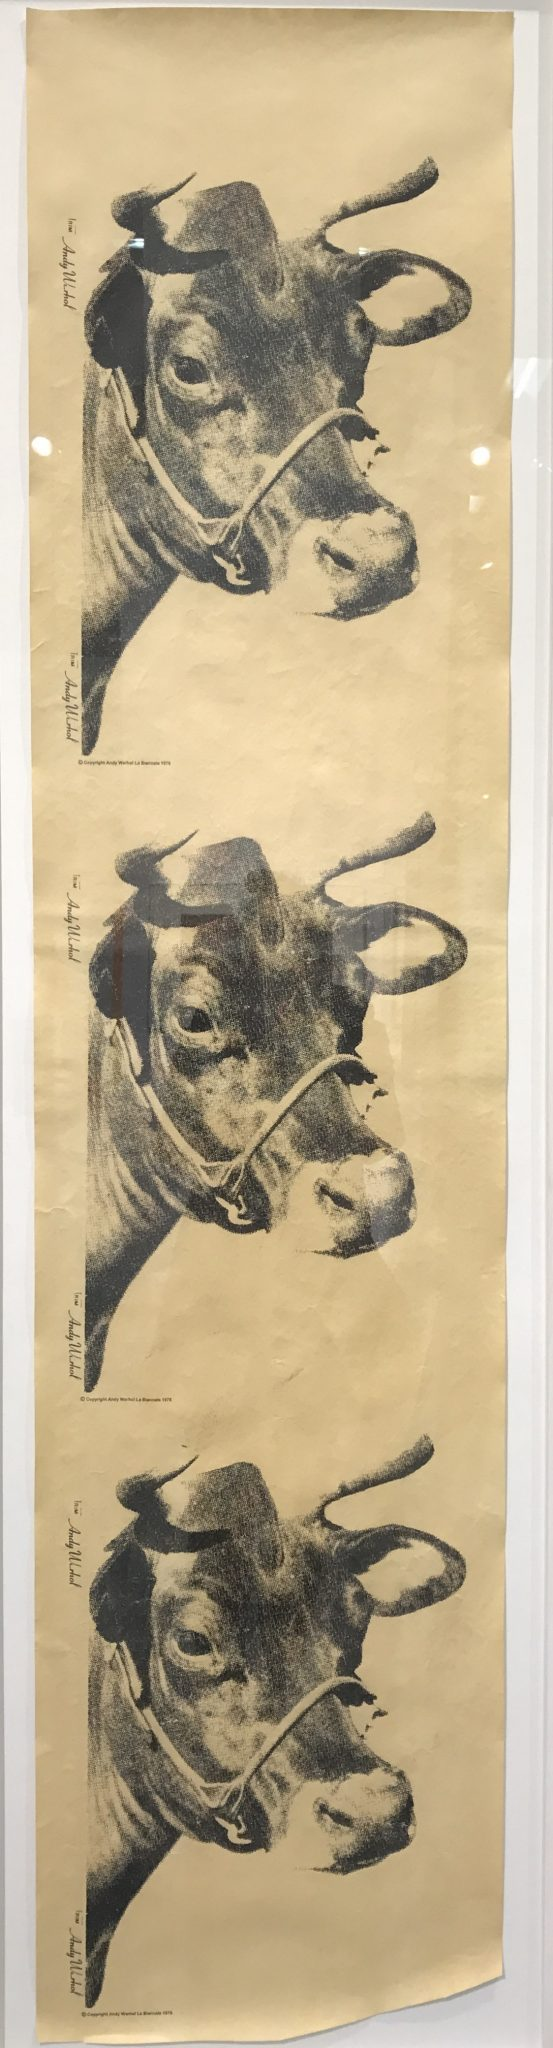 ANDY WARHOL Cow (Wallpaper La Bienale), 1976